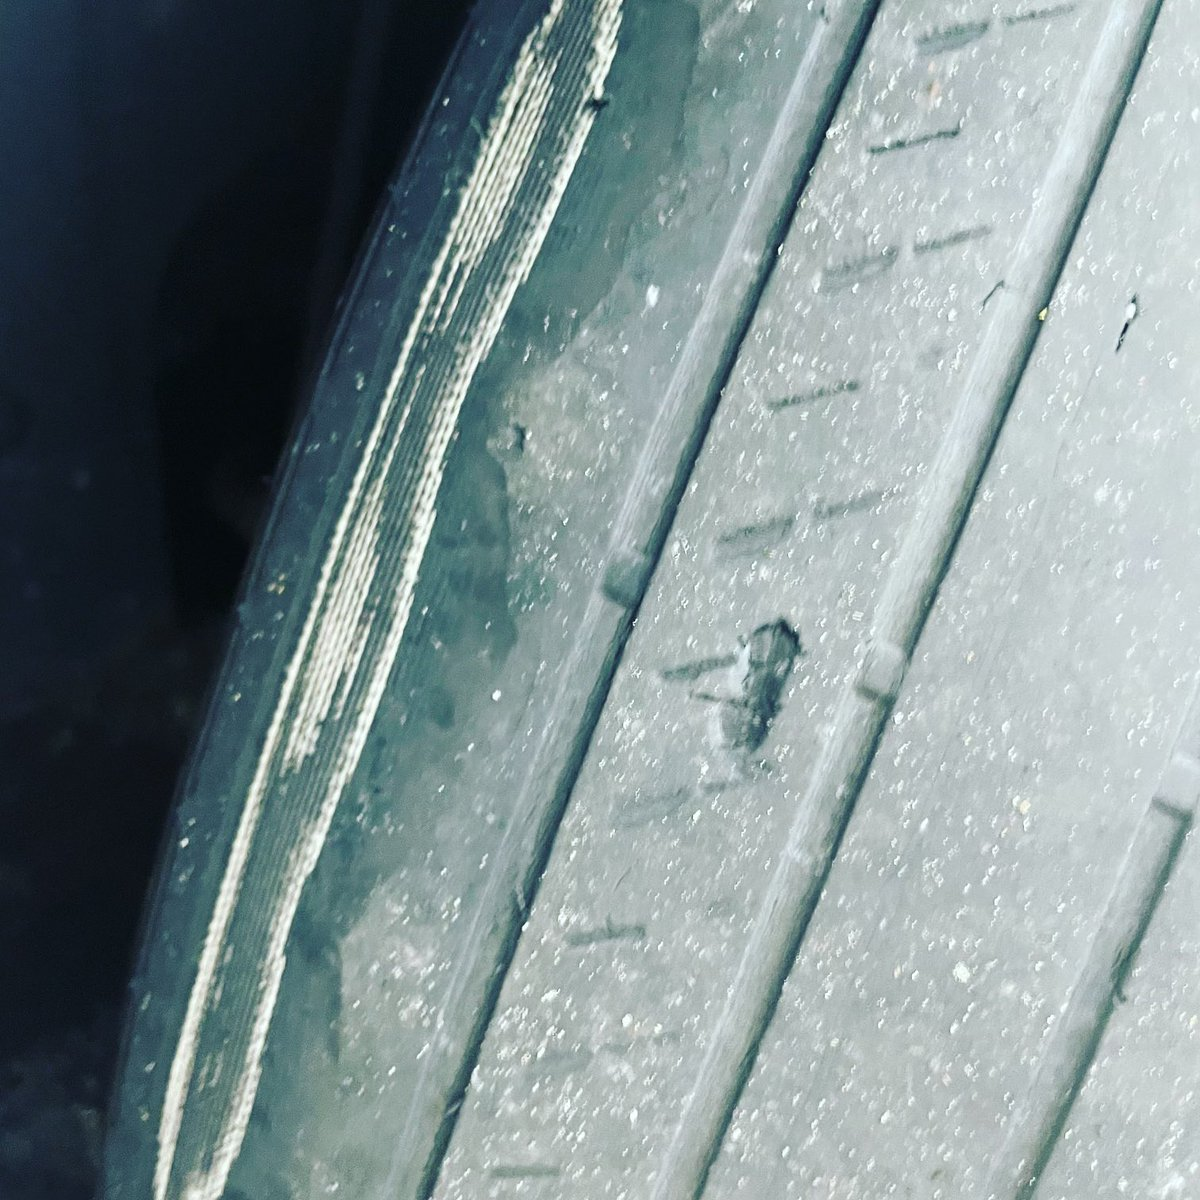 @Avis so I picked up my car today and the tires are bald and steel belt is showing. So dangerous. Does Avis not care? Here's an image if u don't believe. #safety #rentalcars #avis https://t.co/OhC8MttOCp